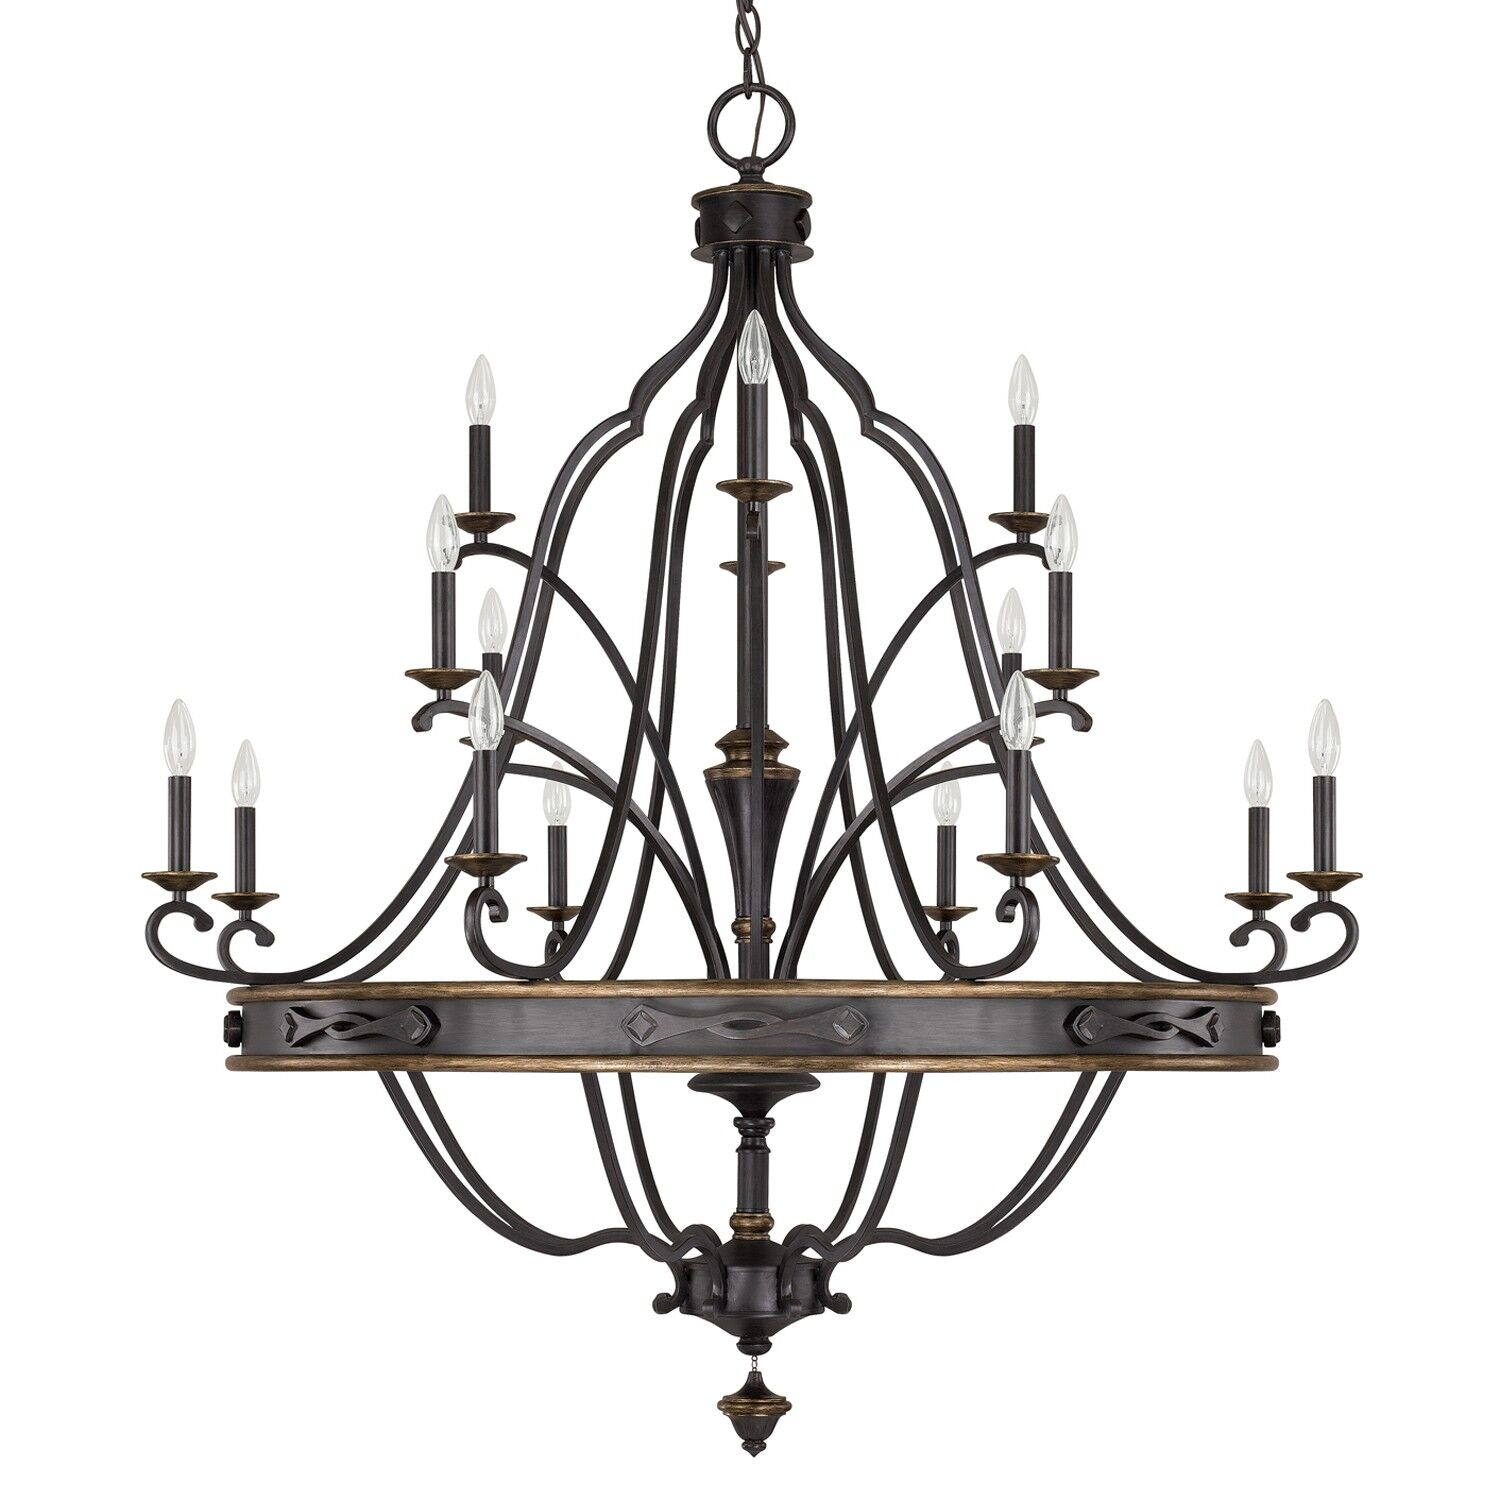 Higham 16-Light Chandelier